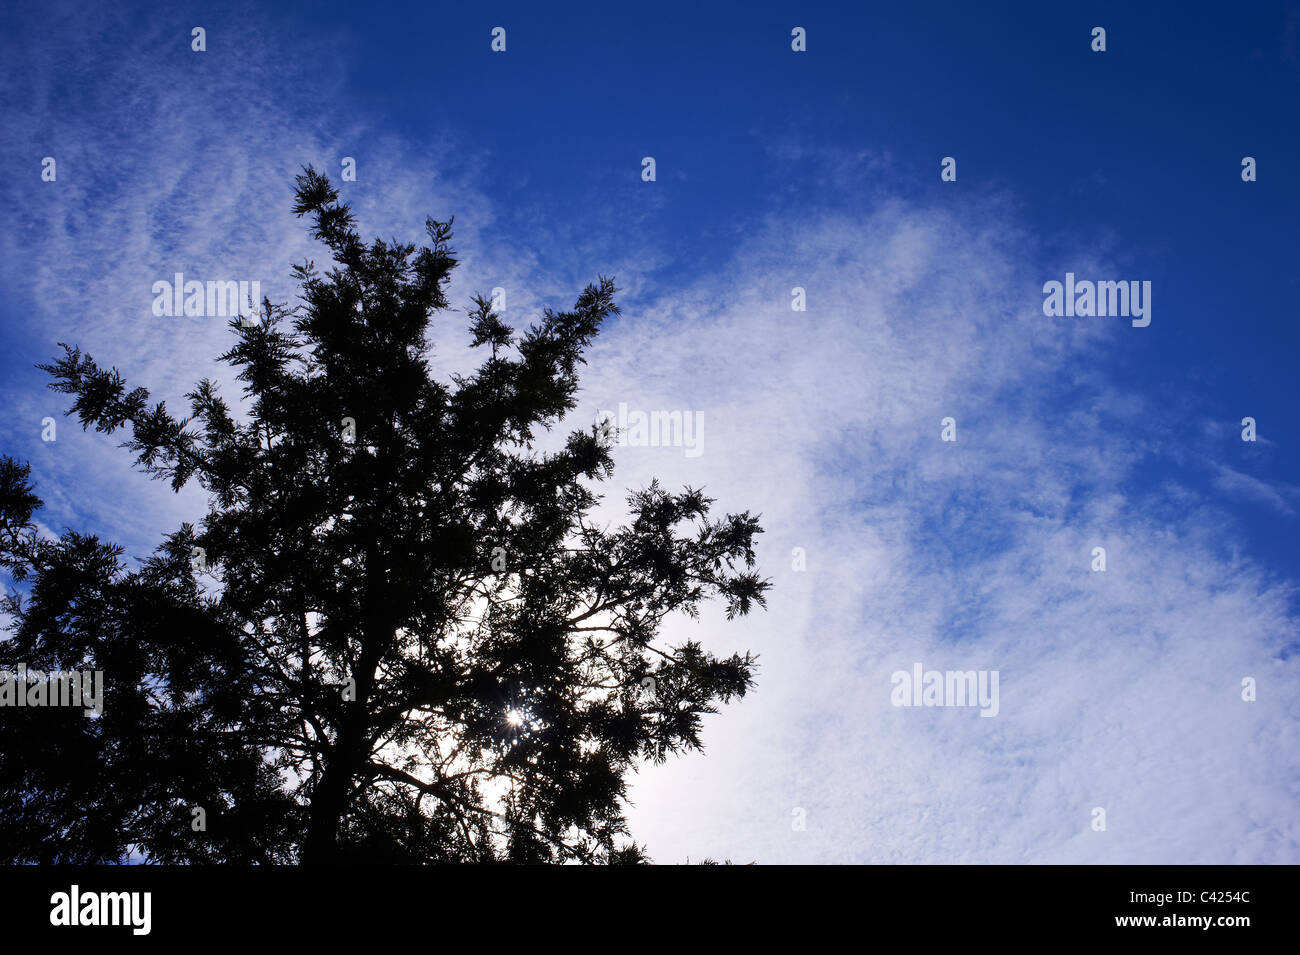 Silhouetted tree against blue cloudy sky - Stock Image